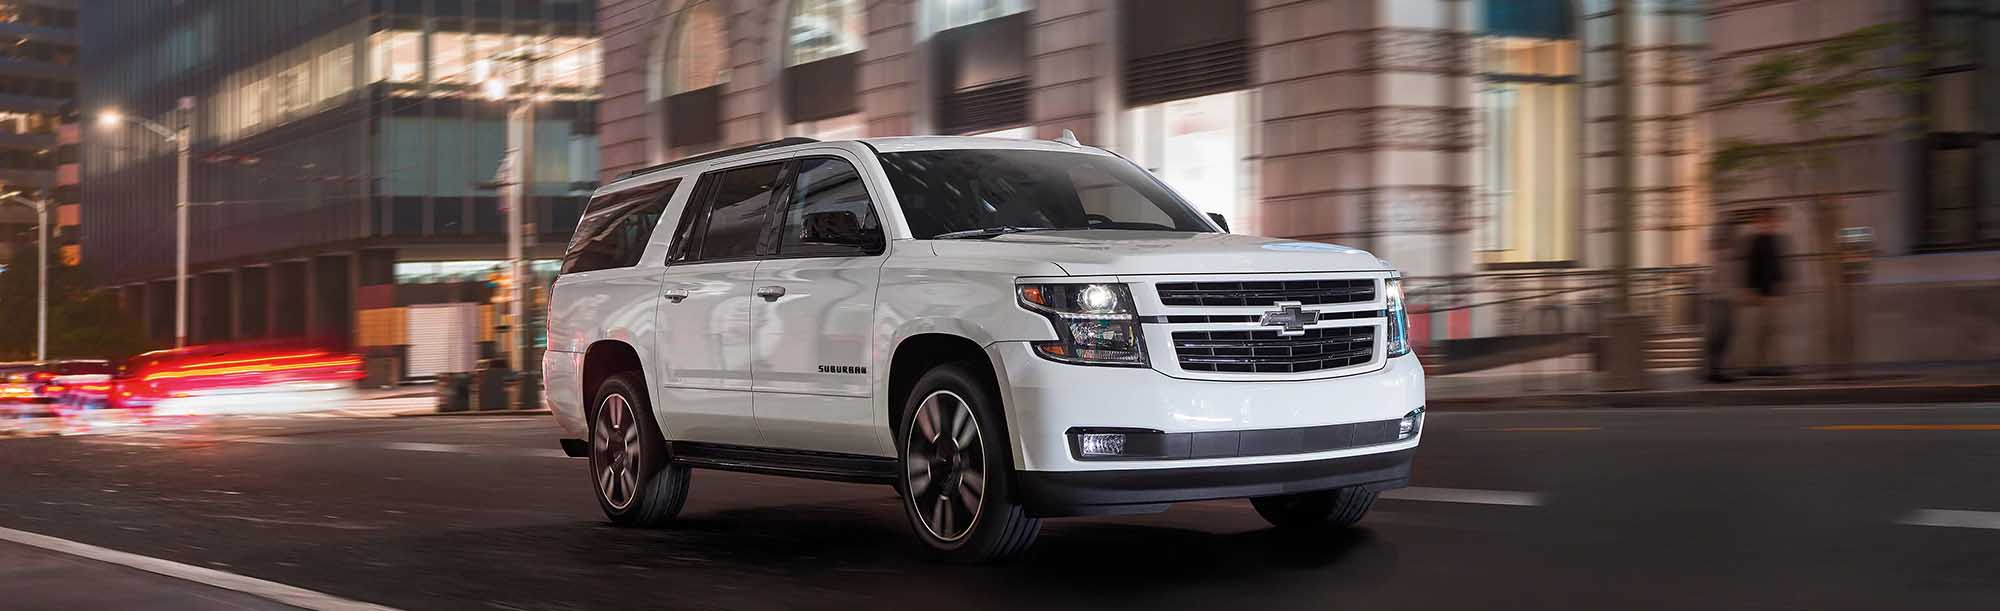 2020 Chevrolet Suburban SUV On Road